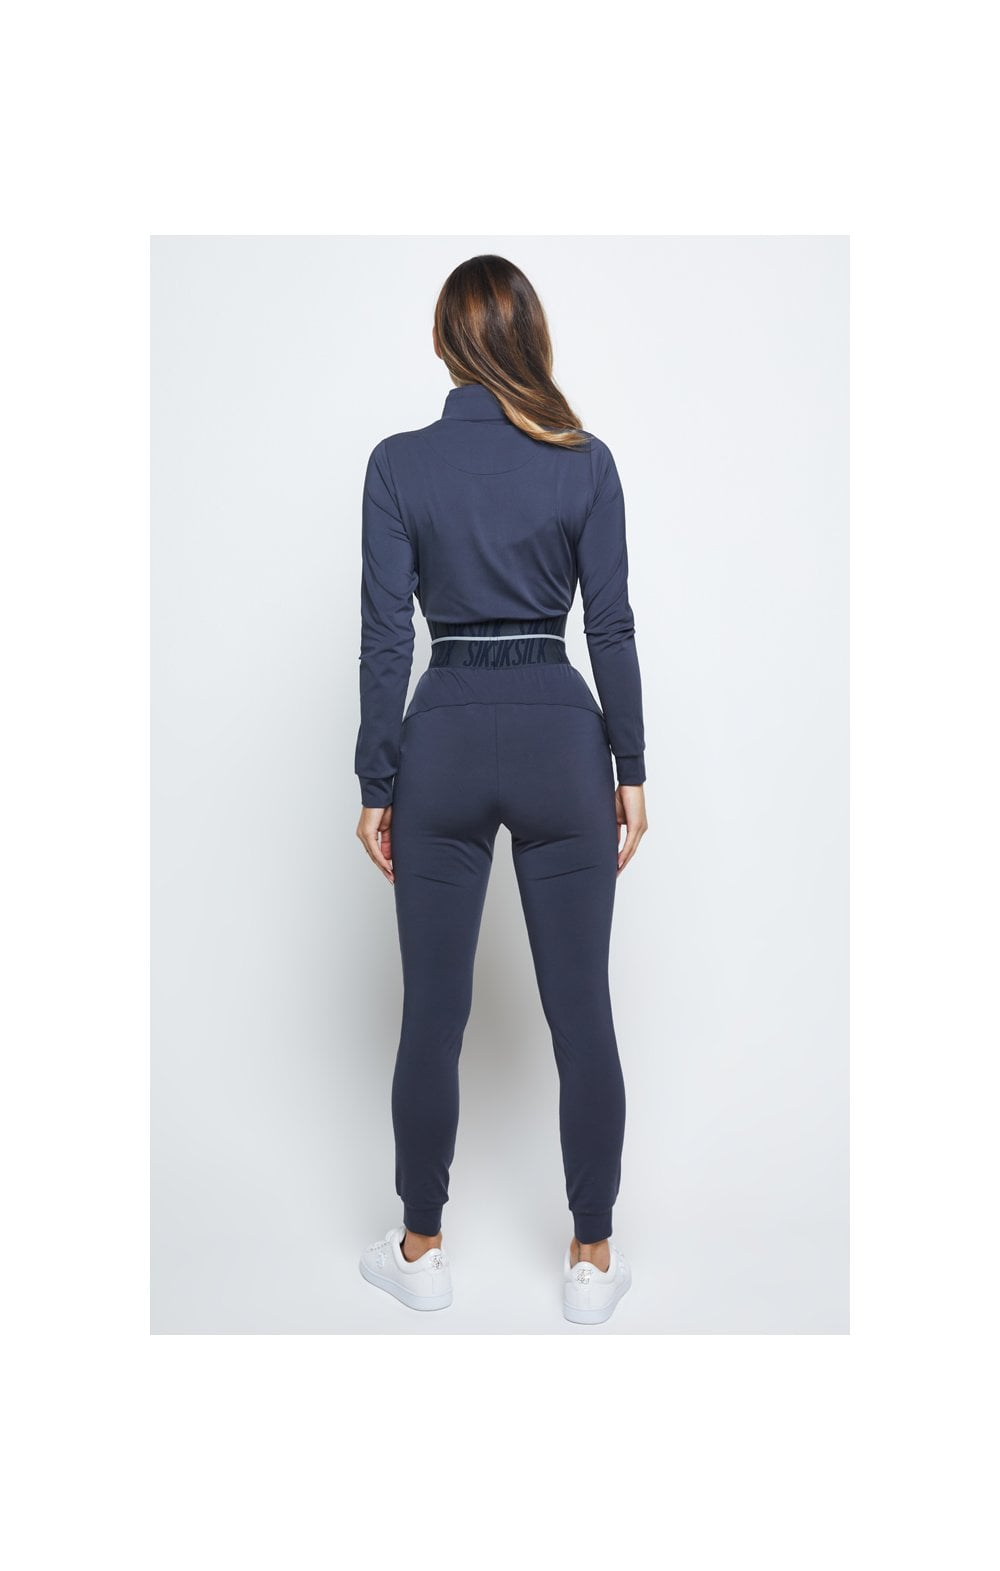 SikSilk Gravity Track Top - Navy (4)